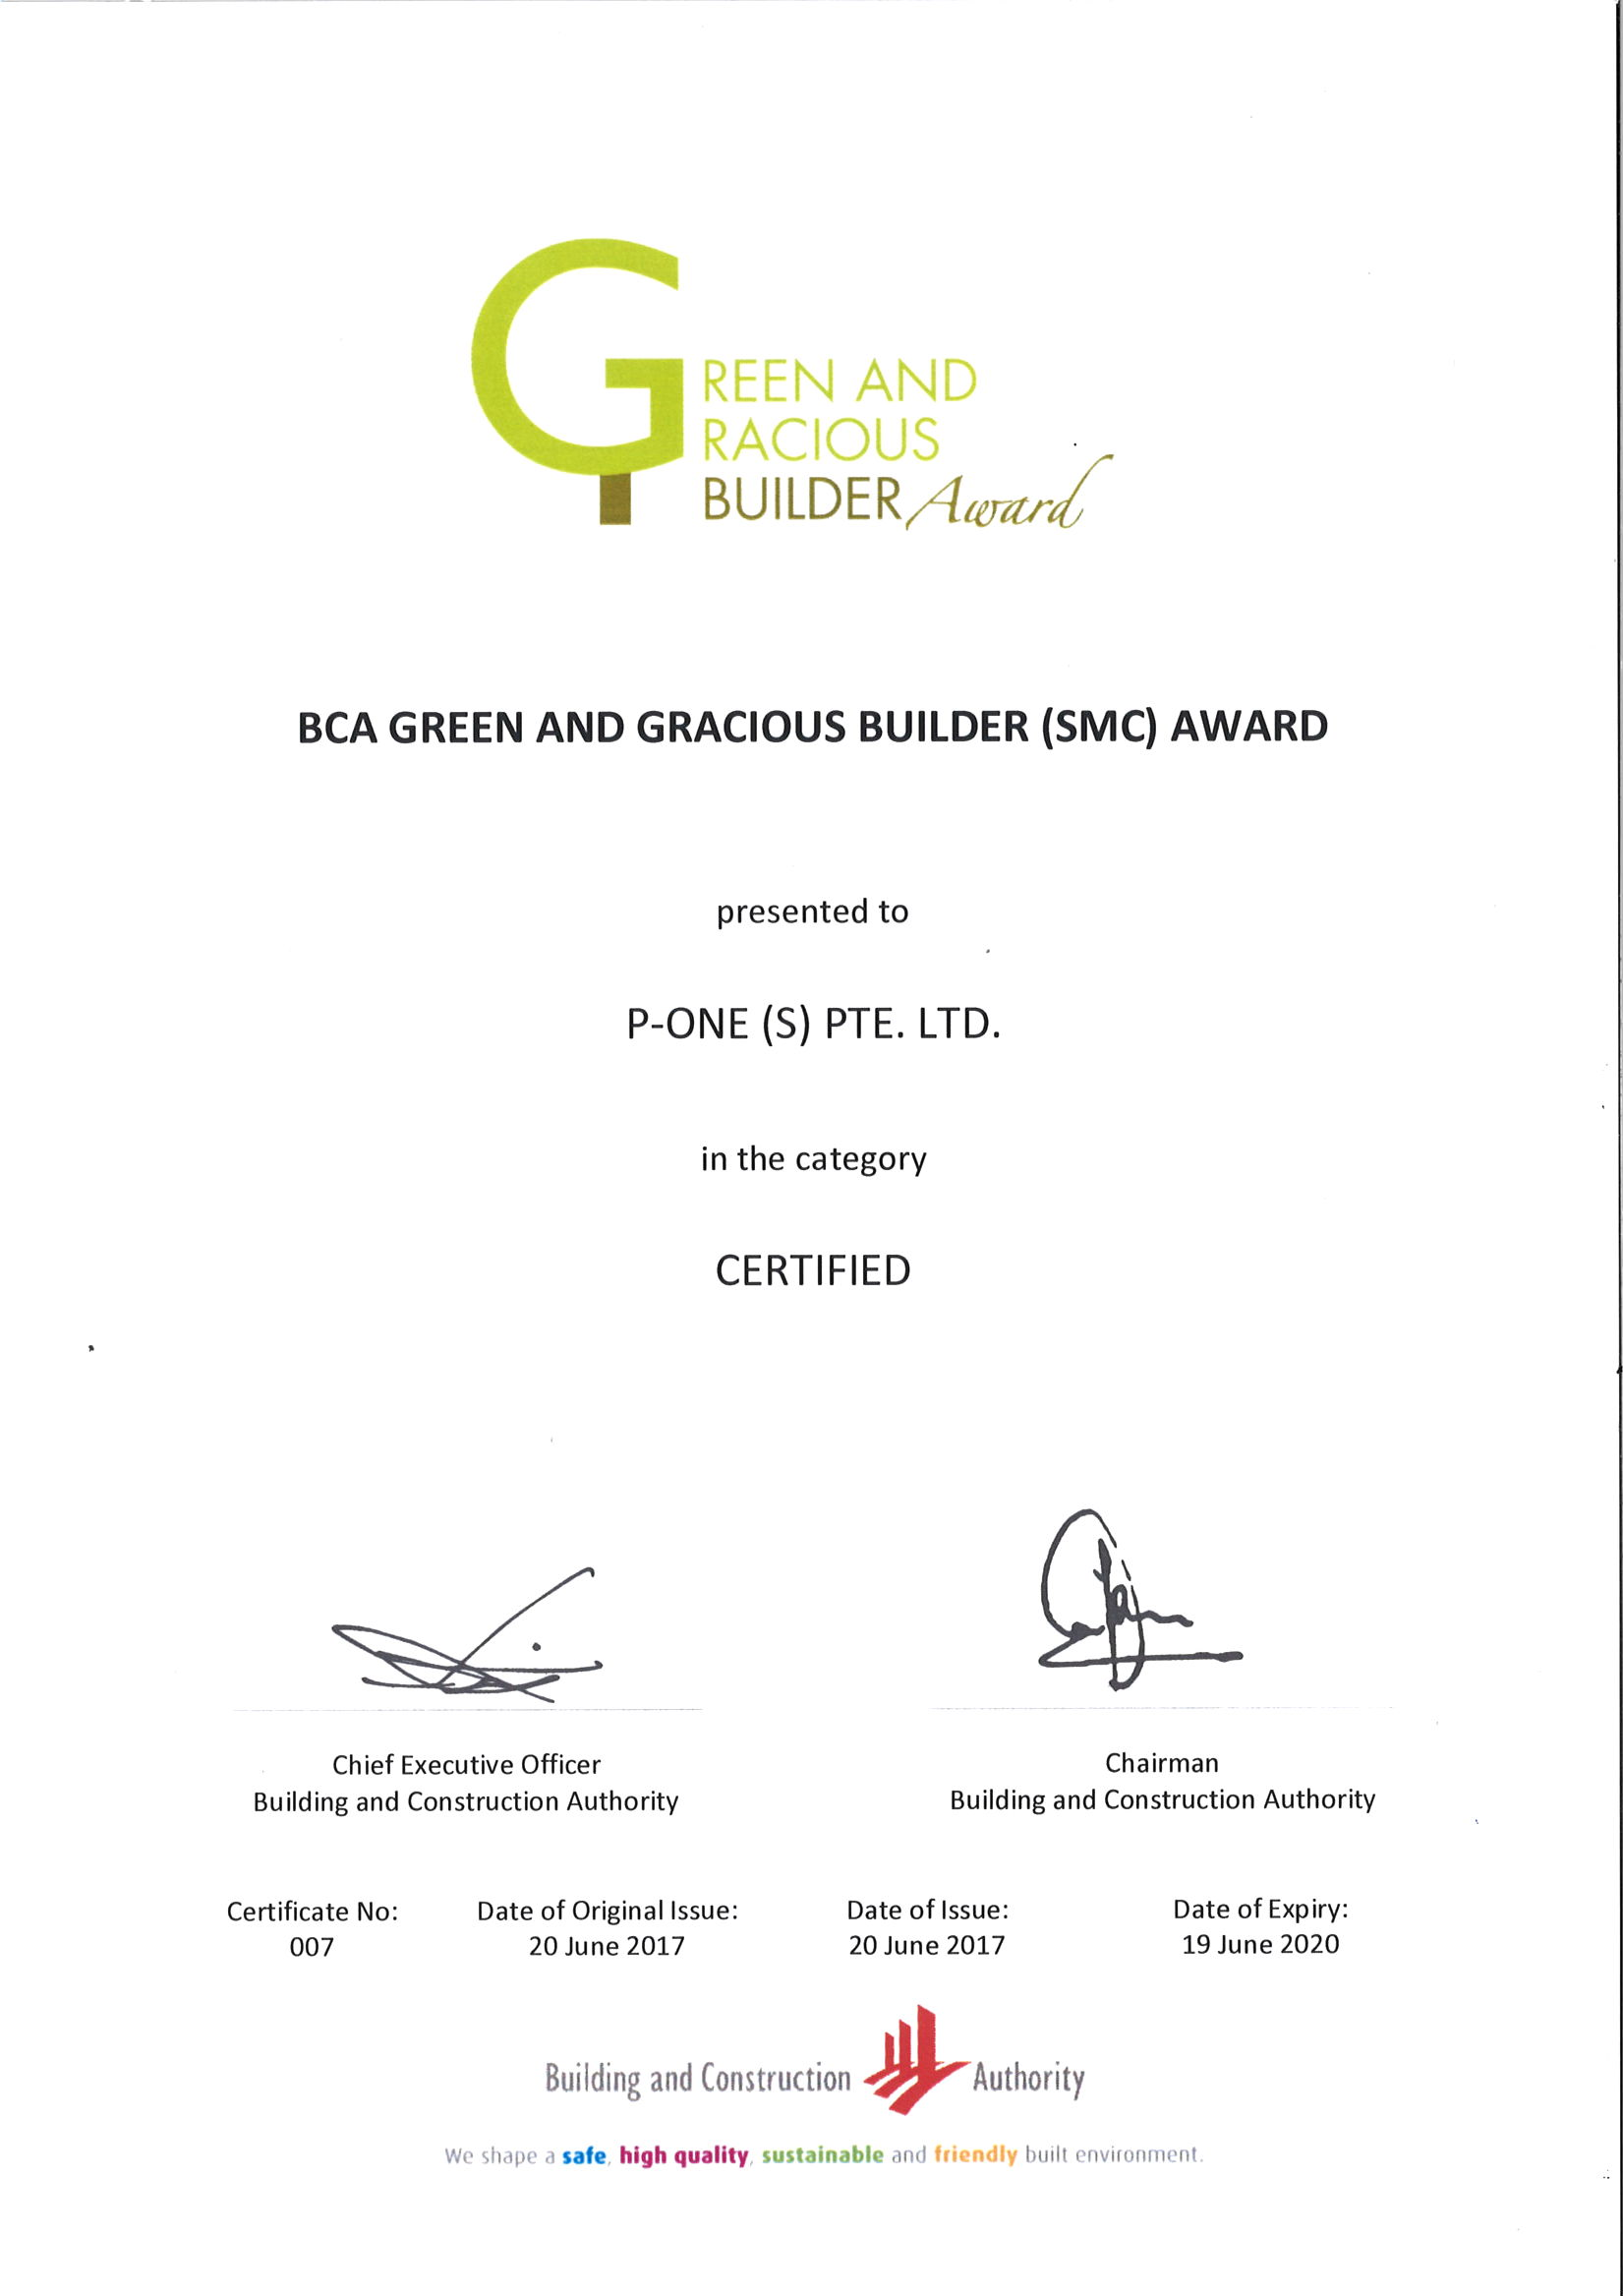 BCA Green and Gracious Builder (SMC) Award